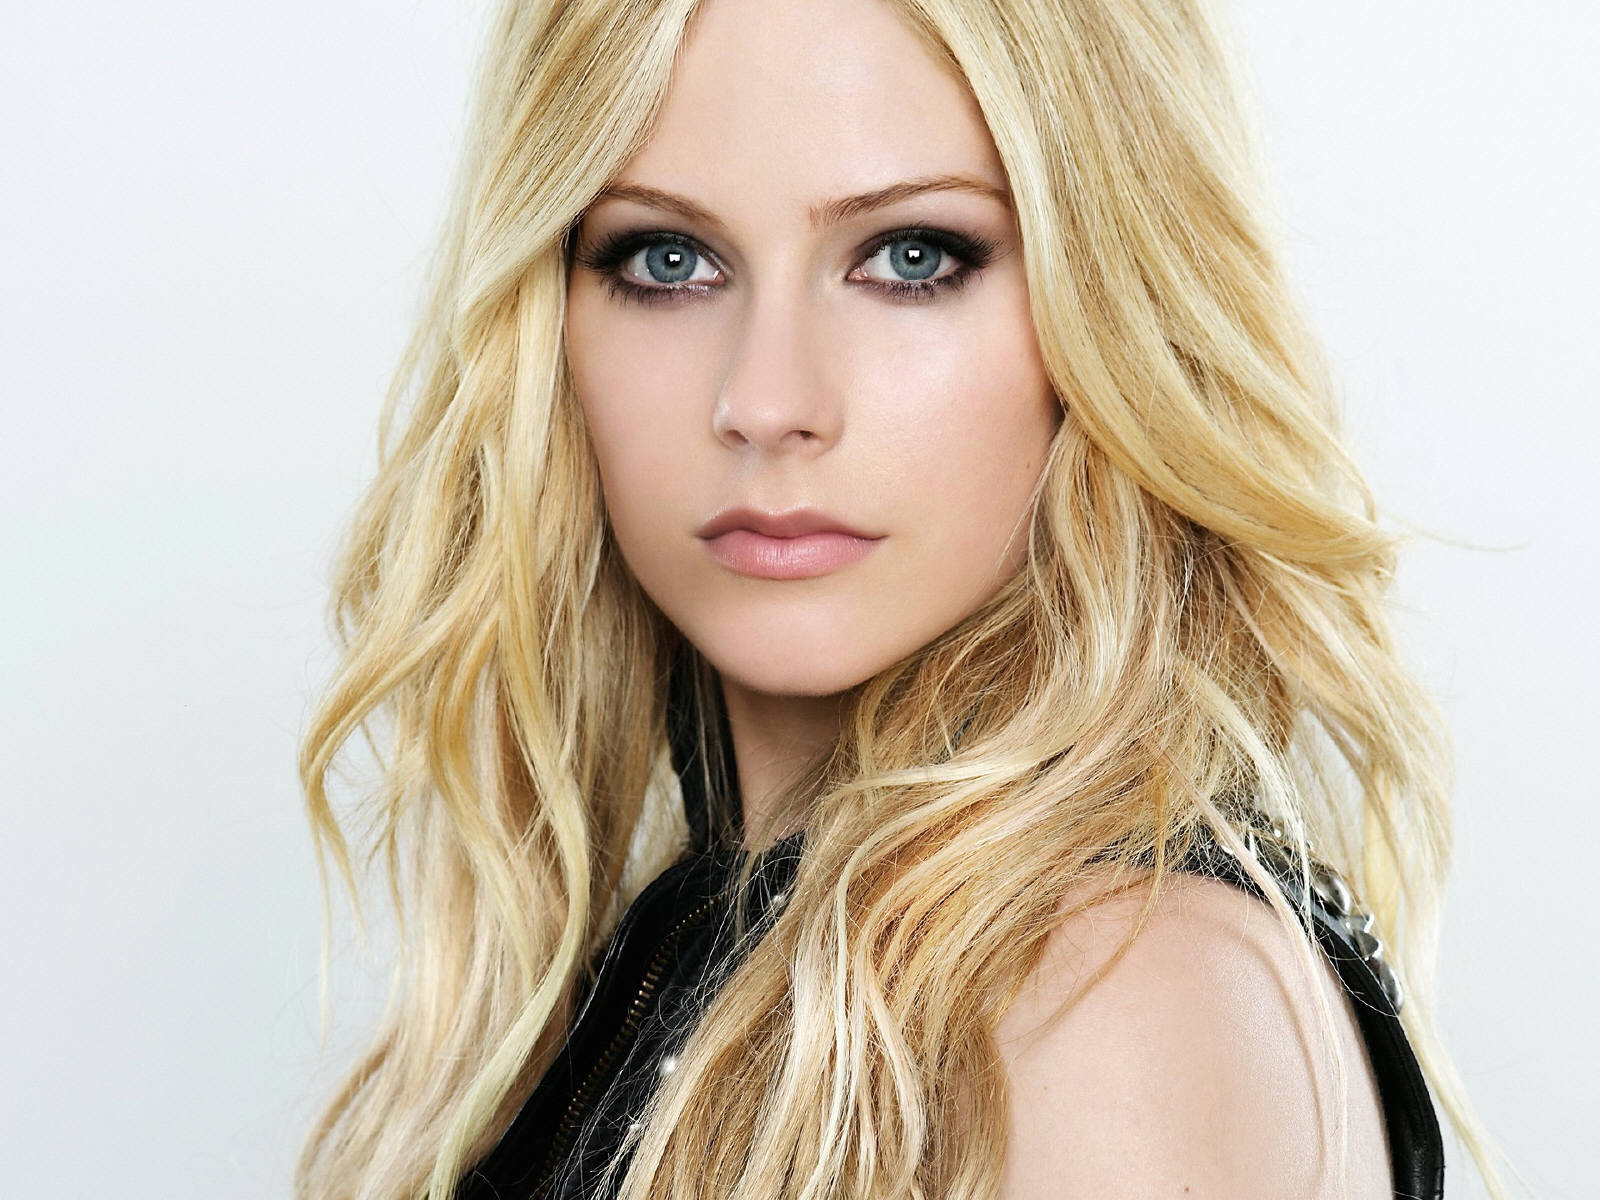 http://3.bp.blogspot.com/-bJYCWpU3ie4/Tu-QUtH1BzI/AAAAAAAAWUw/zugUk8wyUFo/s1600/Beautiful-Avril-Lavigne-Wallpapers-2.jpg